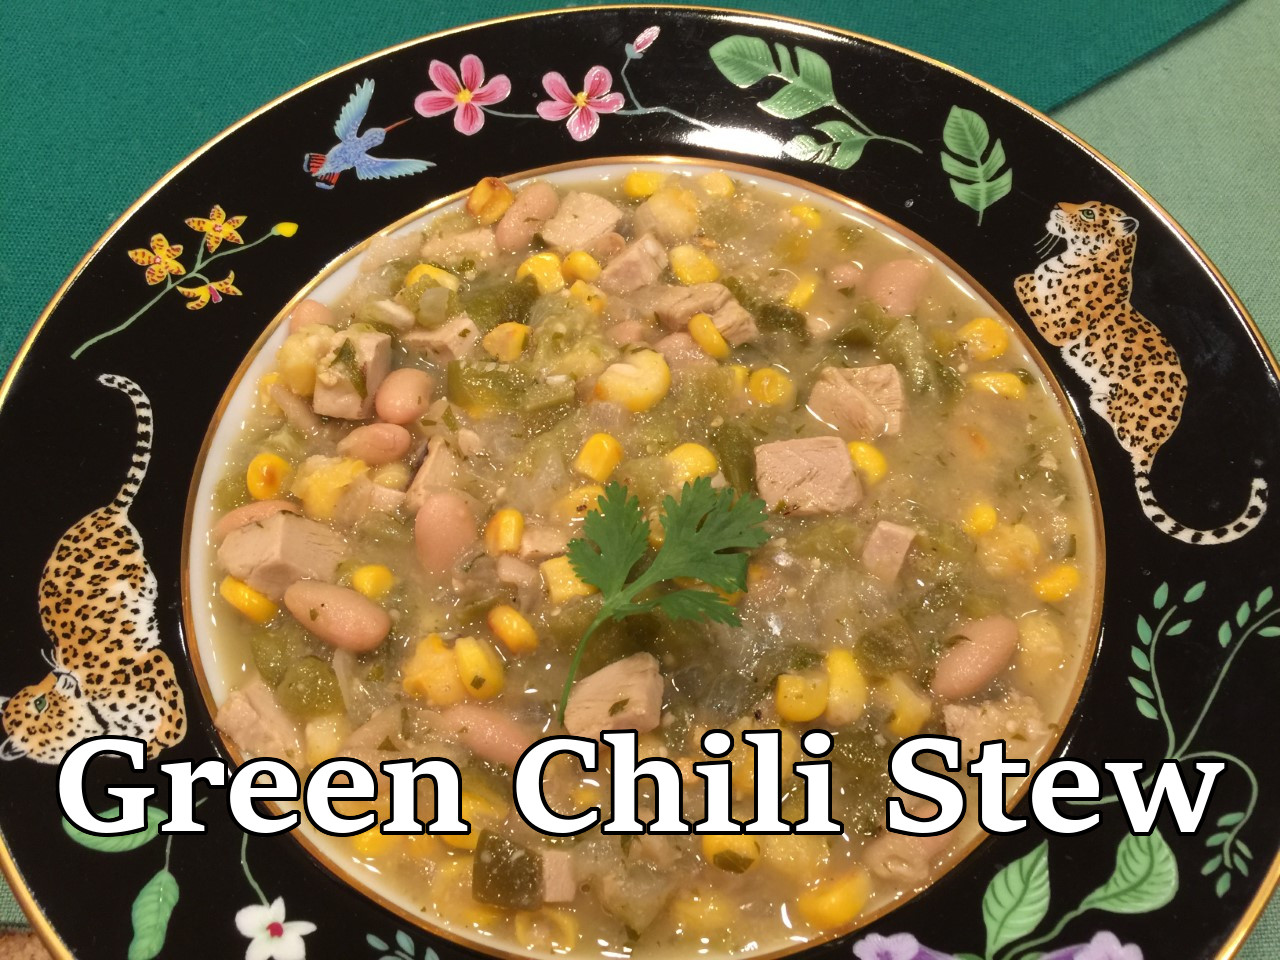 green chili stew text